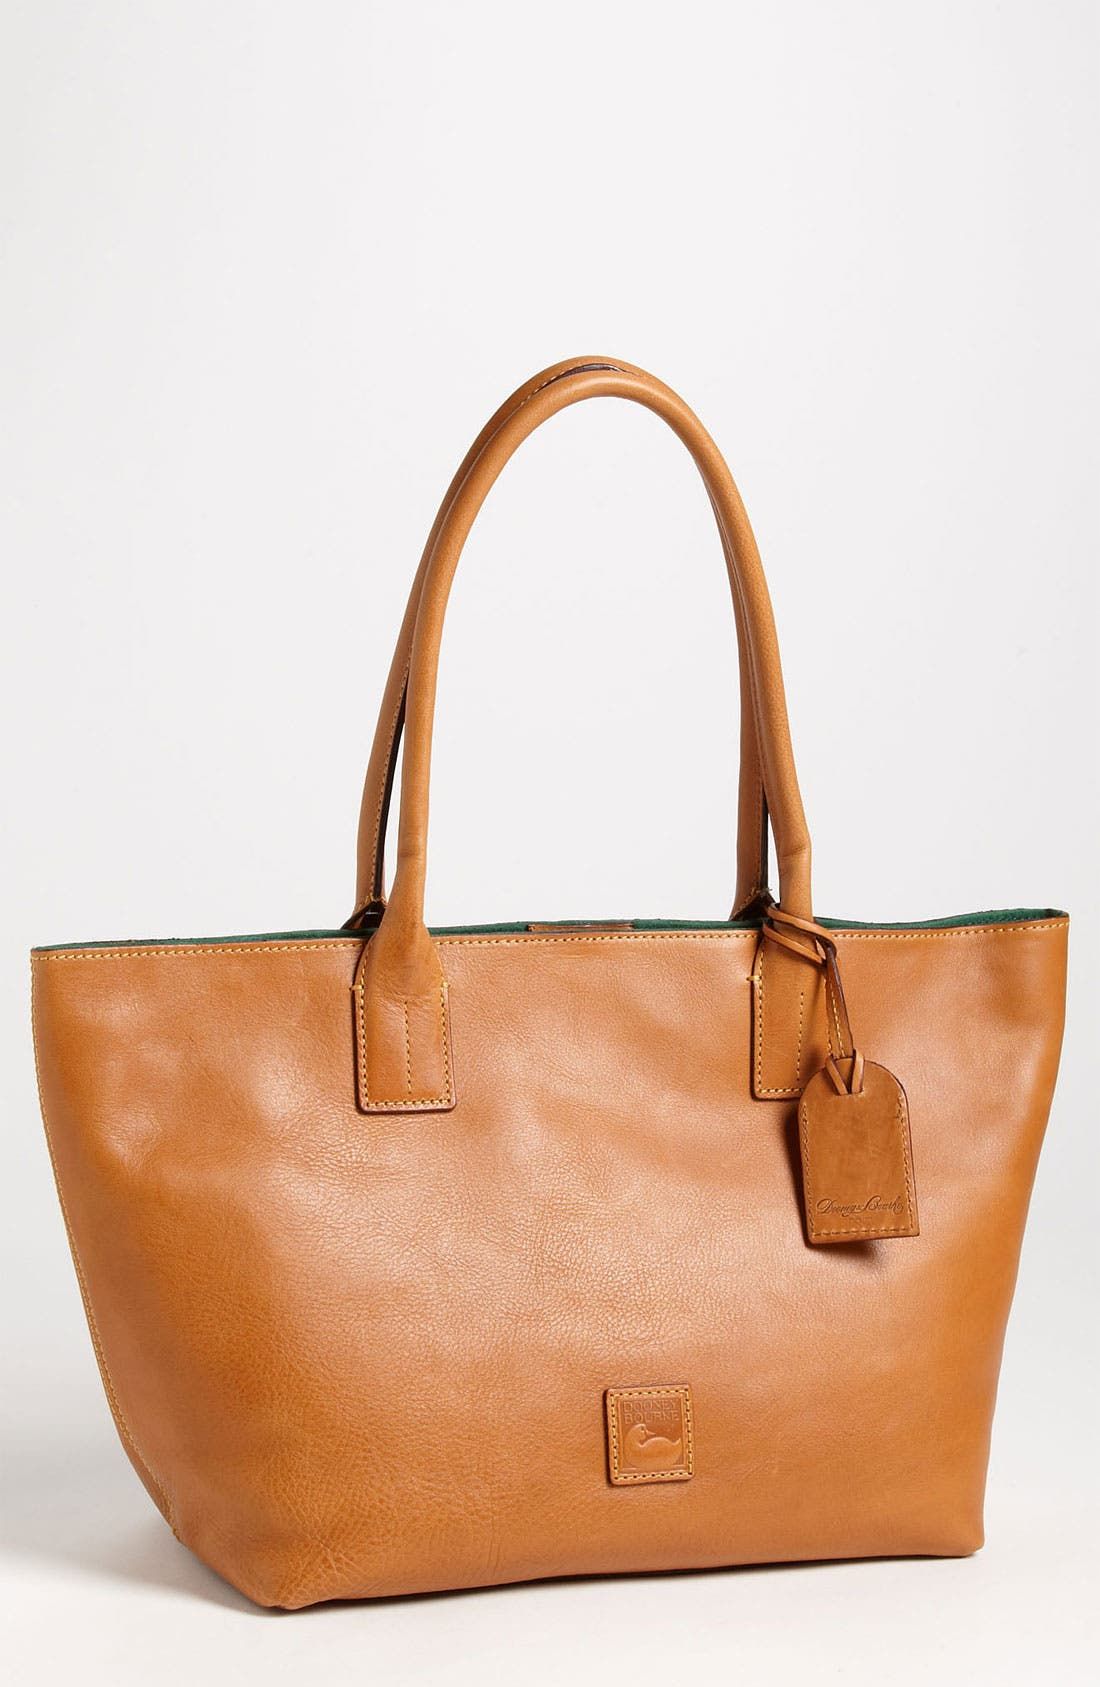 Alternate Image 1 Selected - Dooney & Bourke 'Russel - Small' Leather Tote